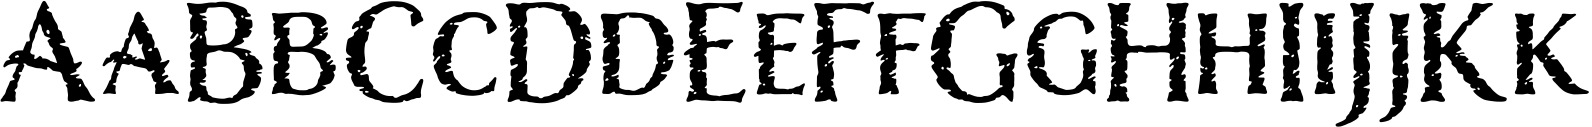 Nelson Rugged Font